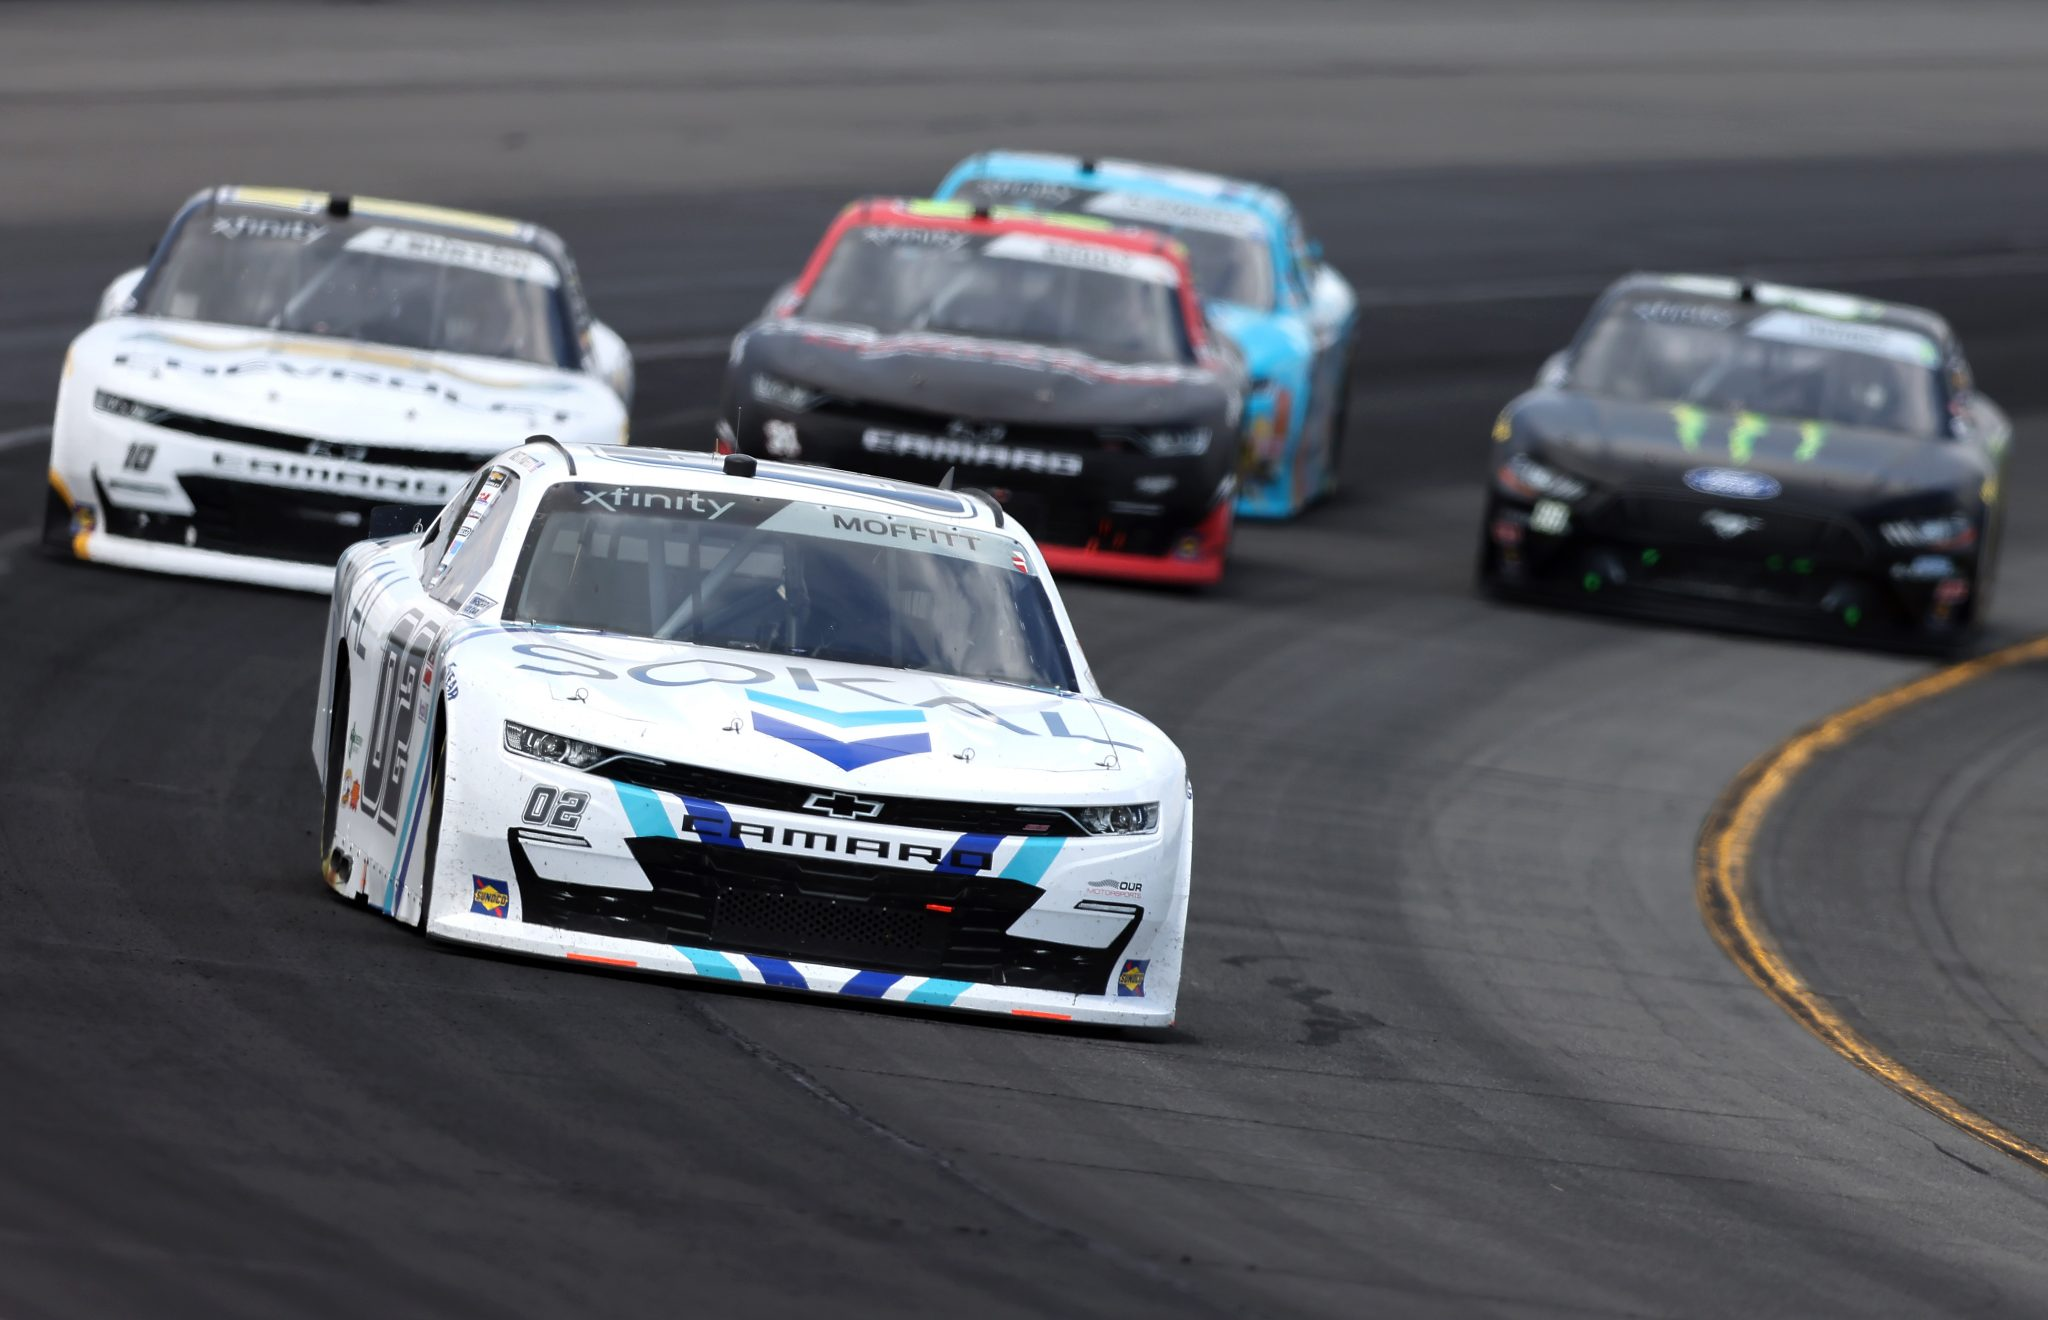 LONG POND, PENNSYLVANIA - JUNE 27: Brett Moffitt, driver of the #02 SOKAL Chevrolet, drives during the NASCAR Xfinity Series Pocono Green 225 Recycled by J.P. Mascaro & Sons at Pocono Raceway on June 27, 2021 in Long Pond, Pennsylvania. (Photo by James Gilbert/Getty Images) | Getty Images